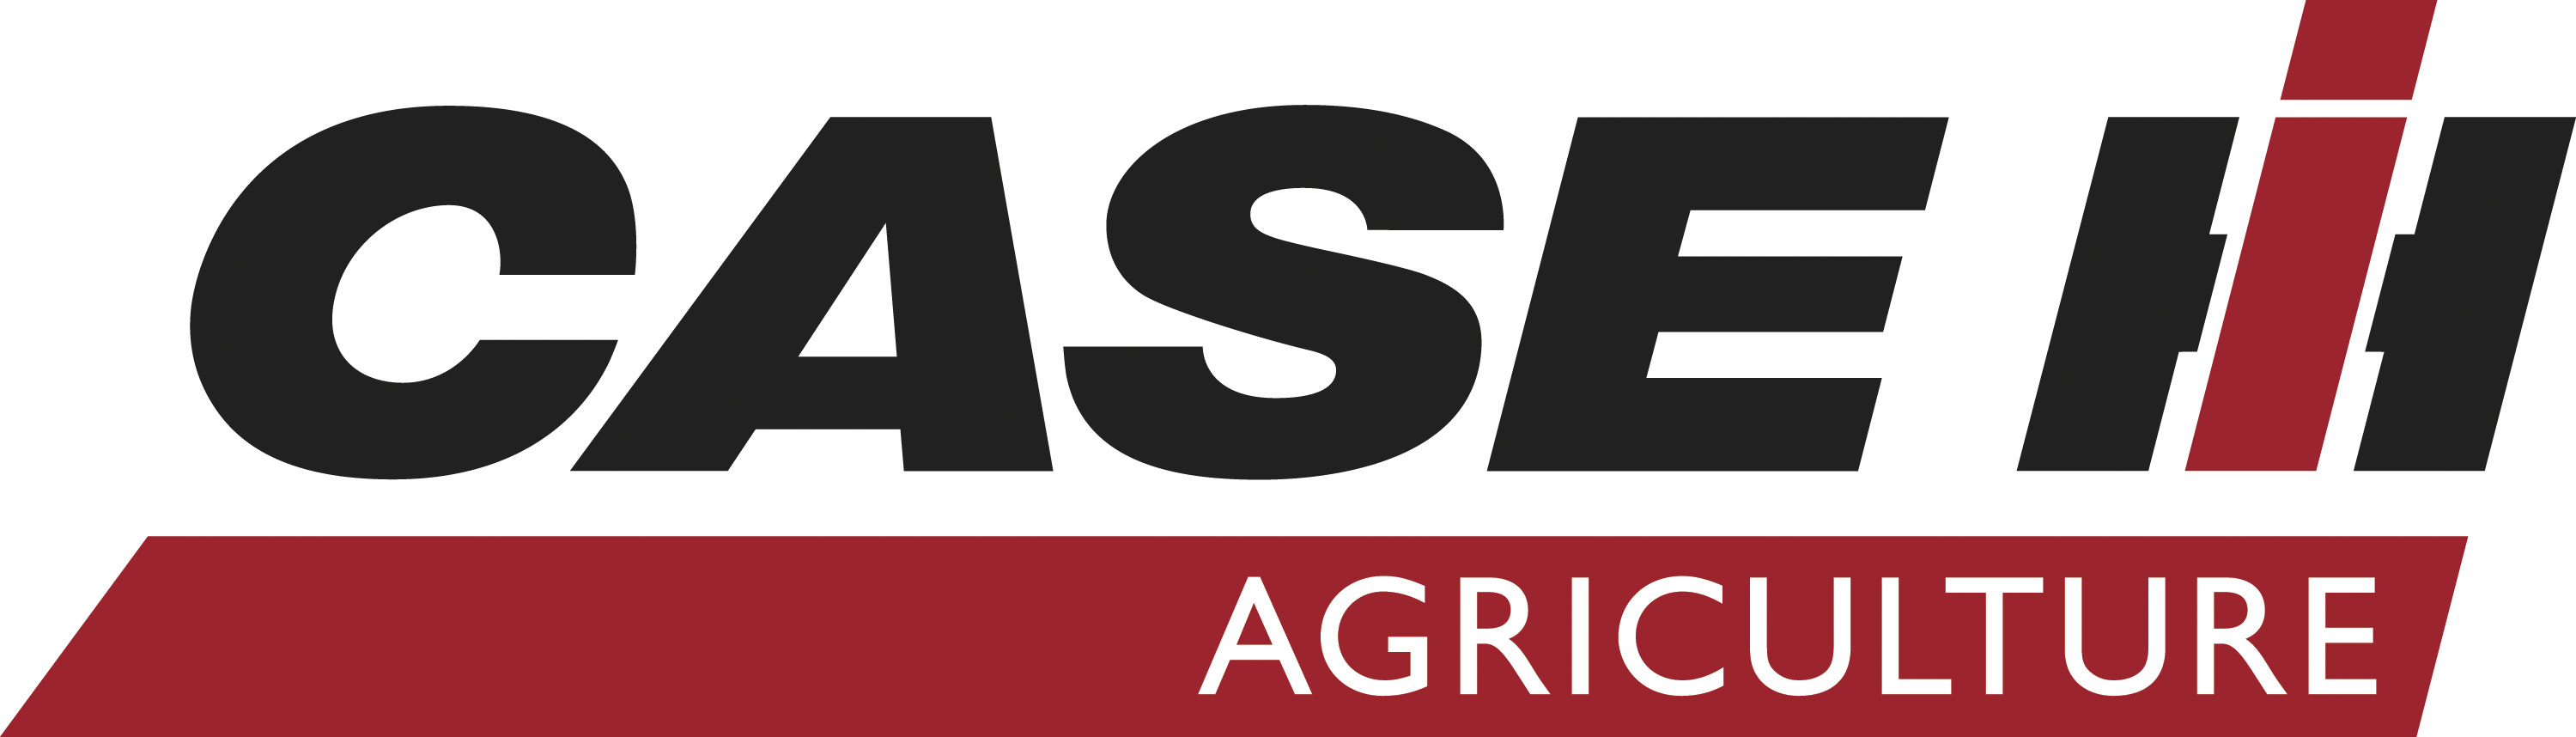 Case Ih Logo Wallpaper